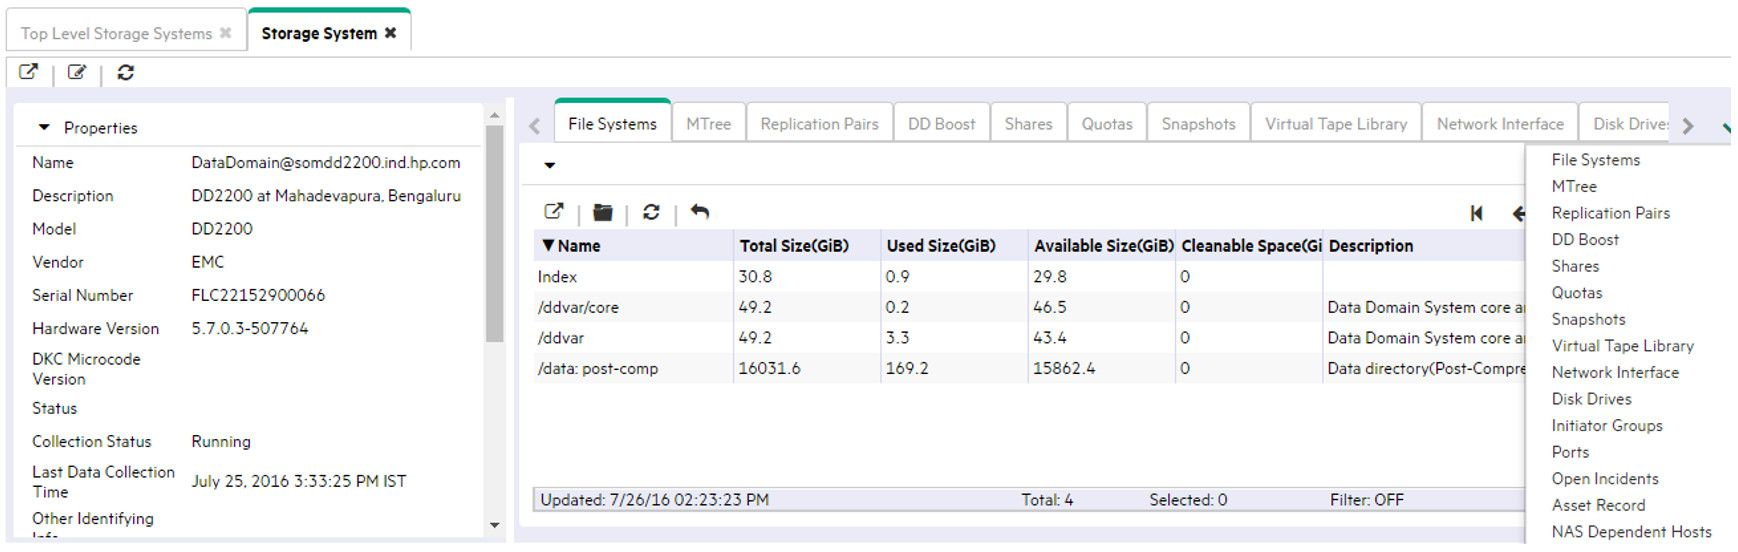 Fig 5: EMC Data Domain inventory view (form view) in SOM